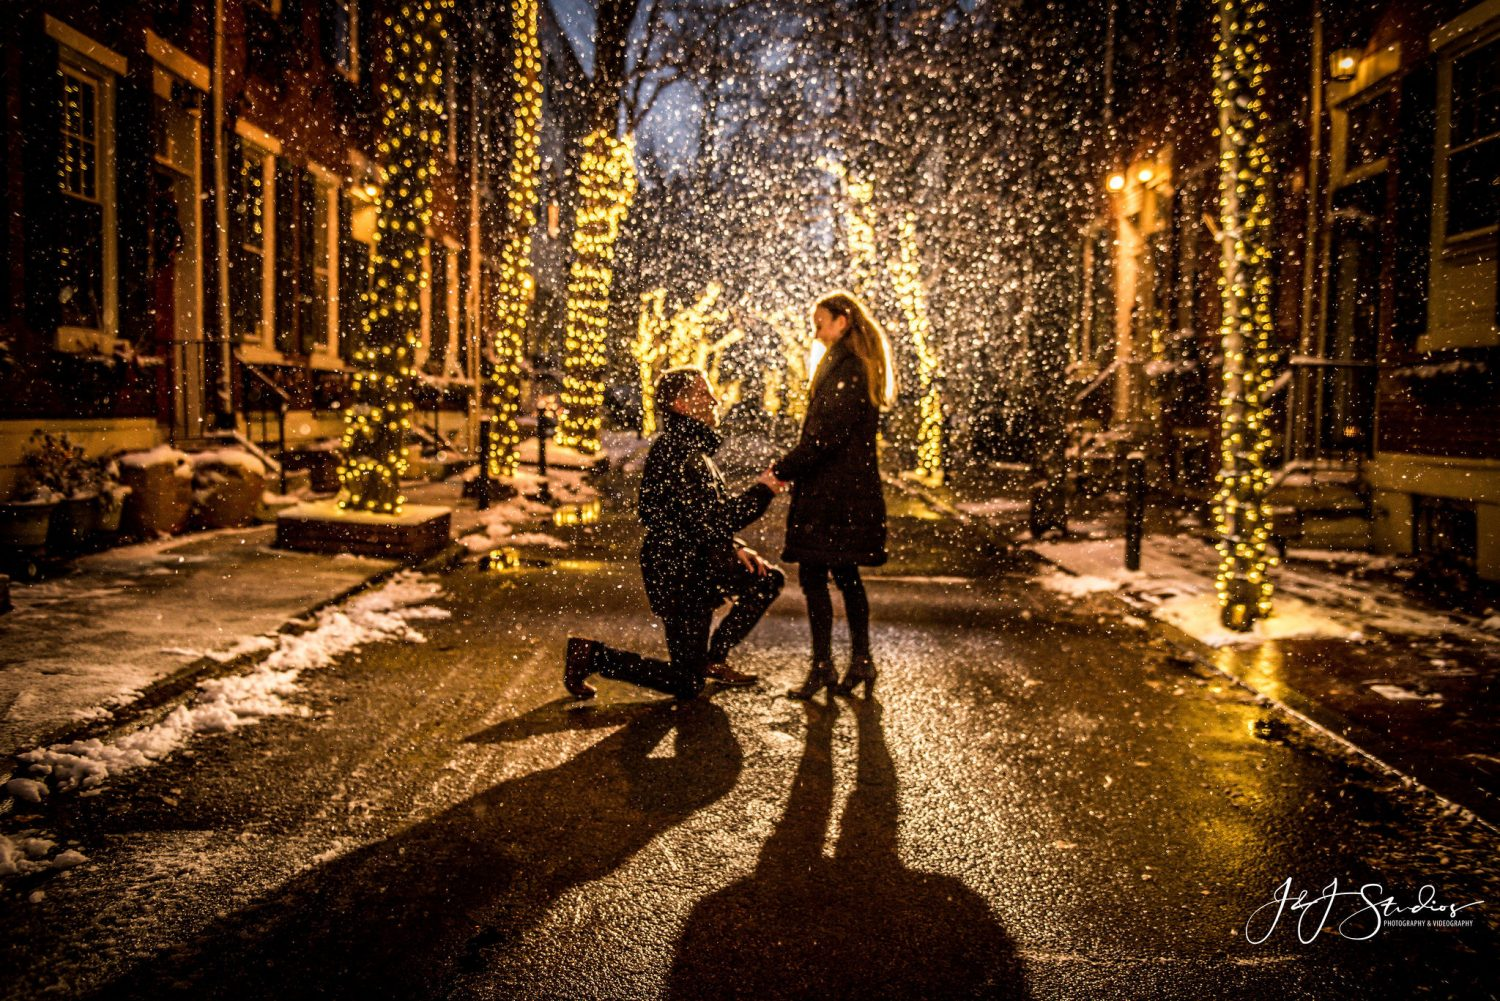 Zach on one knee Christmas Proposal